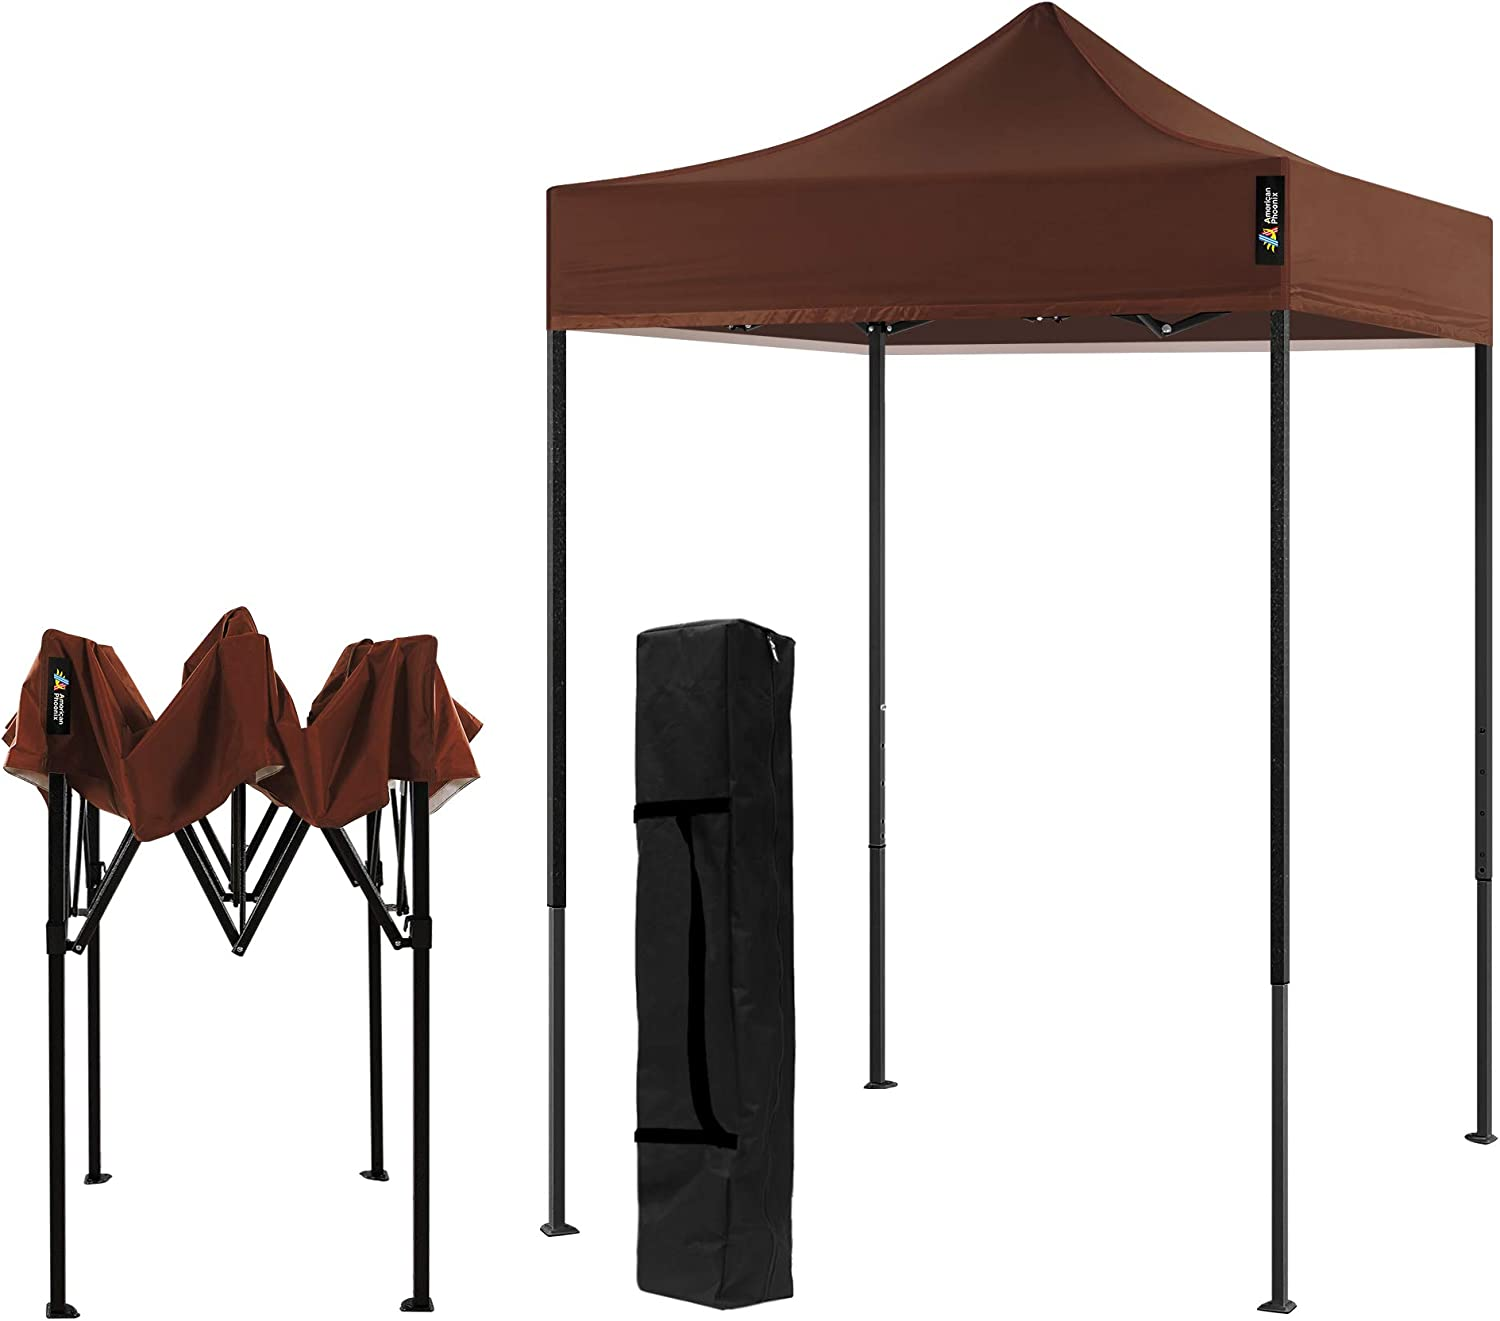 AMERICAN PHOENIX Canopy Tent 5x5 Pop Up Portable Tent Commercial Outdoor Instant Sun Shelter (5'x5' (Black Frame), Brown)